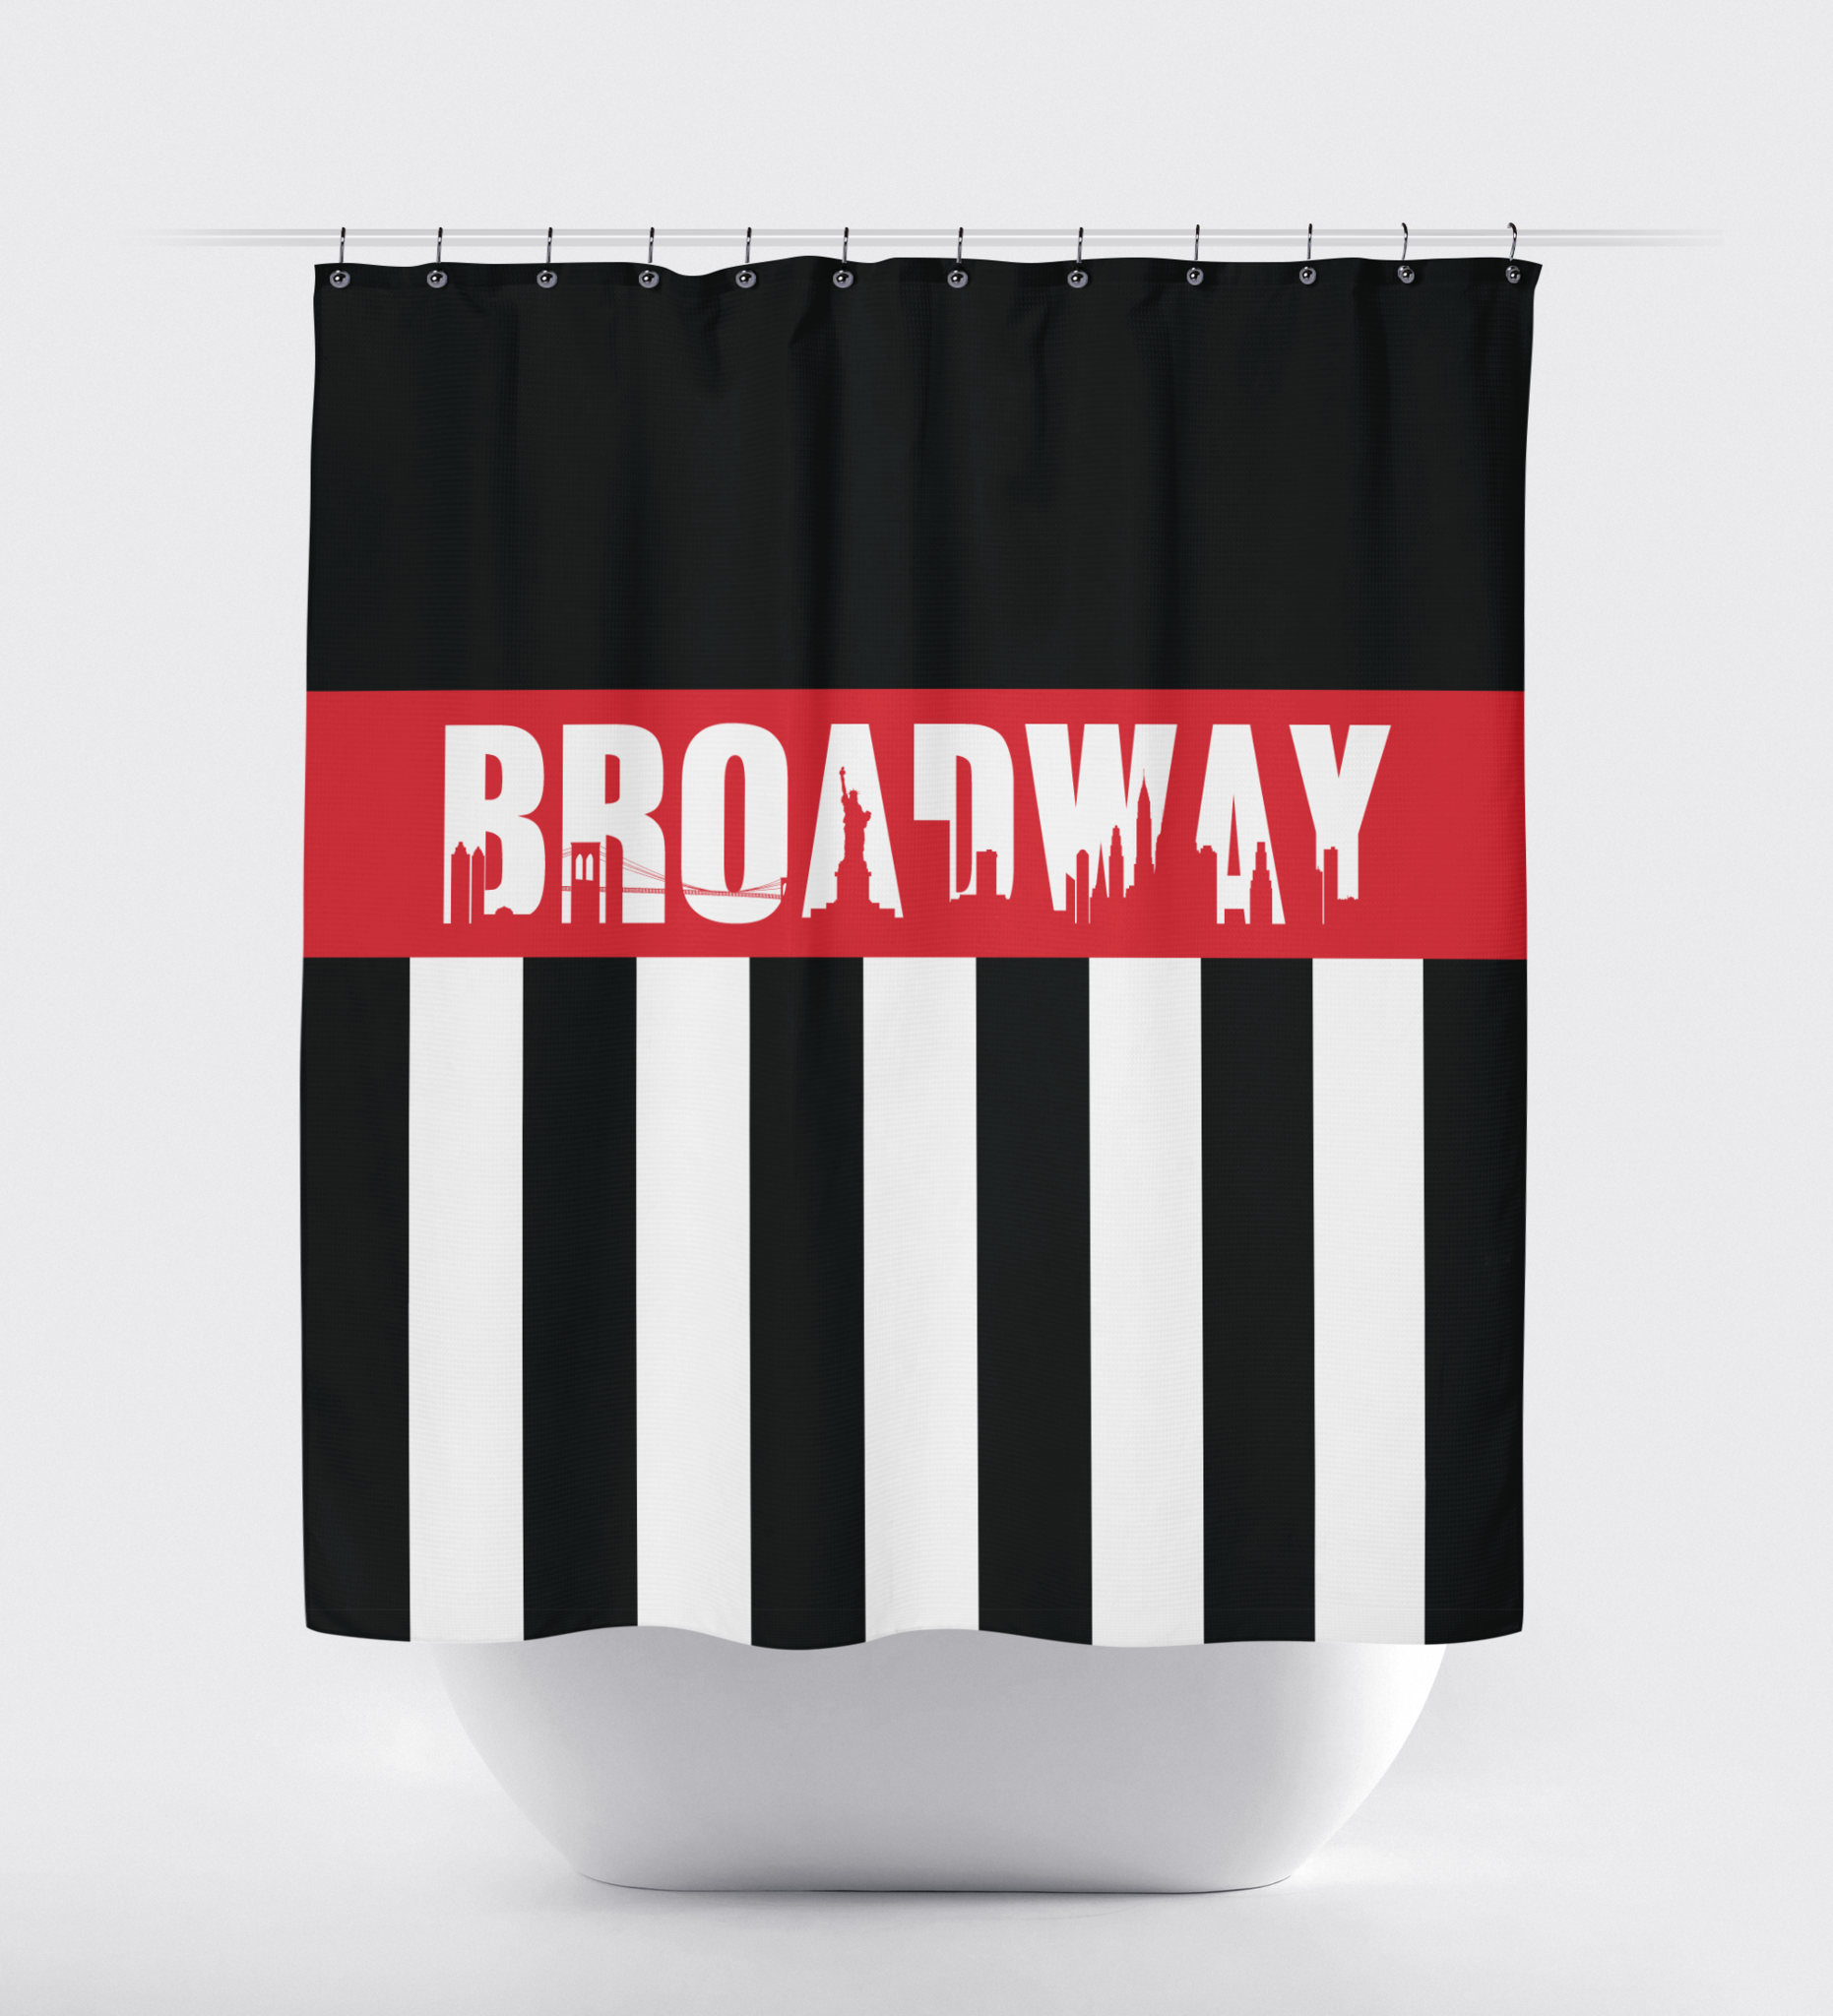 Broadway Shower Curtain With Vertical Stripes And New York City